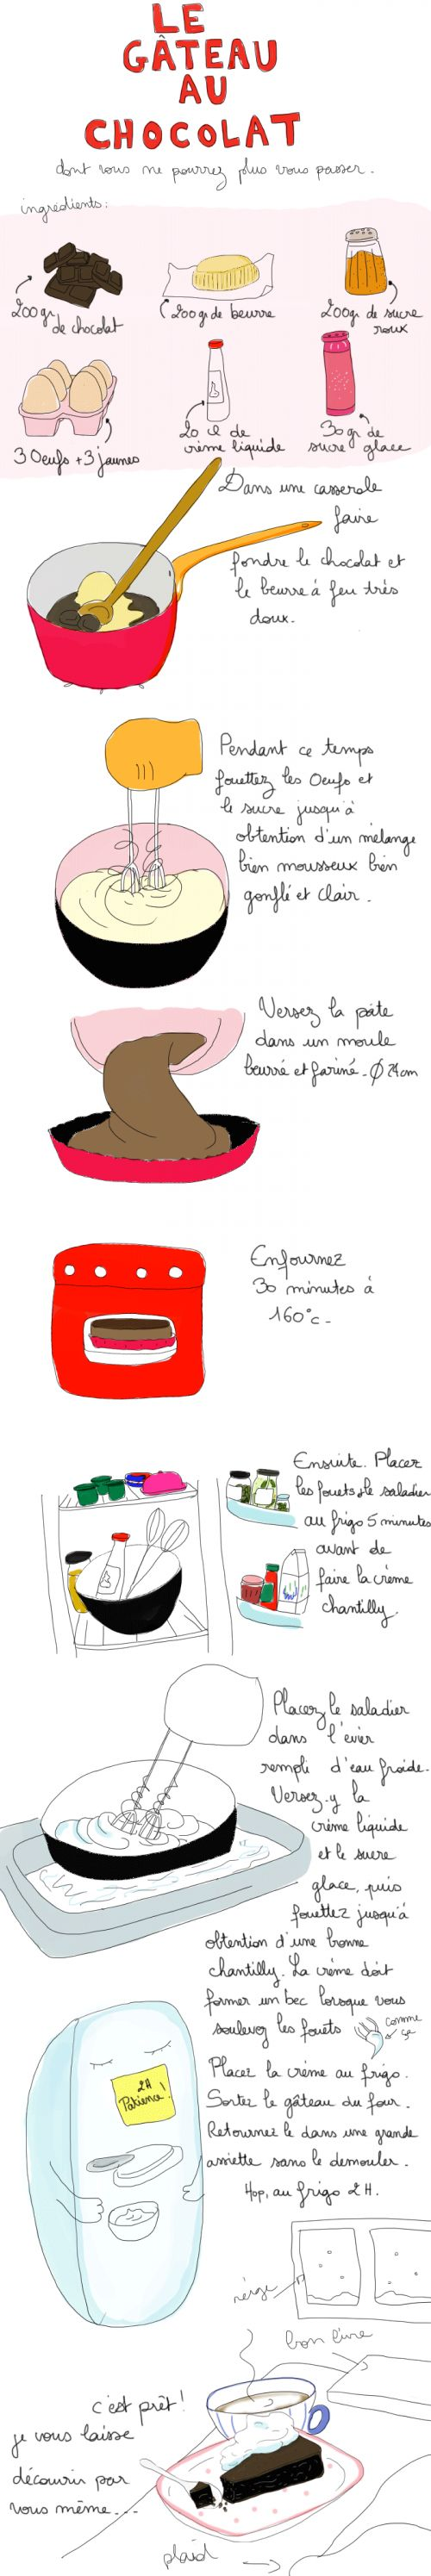 Chocolate cake recipe in French. Cook in kitchen lab. L3-4. Each group brings in ingredients.